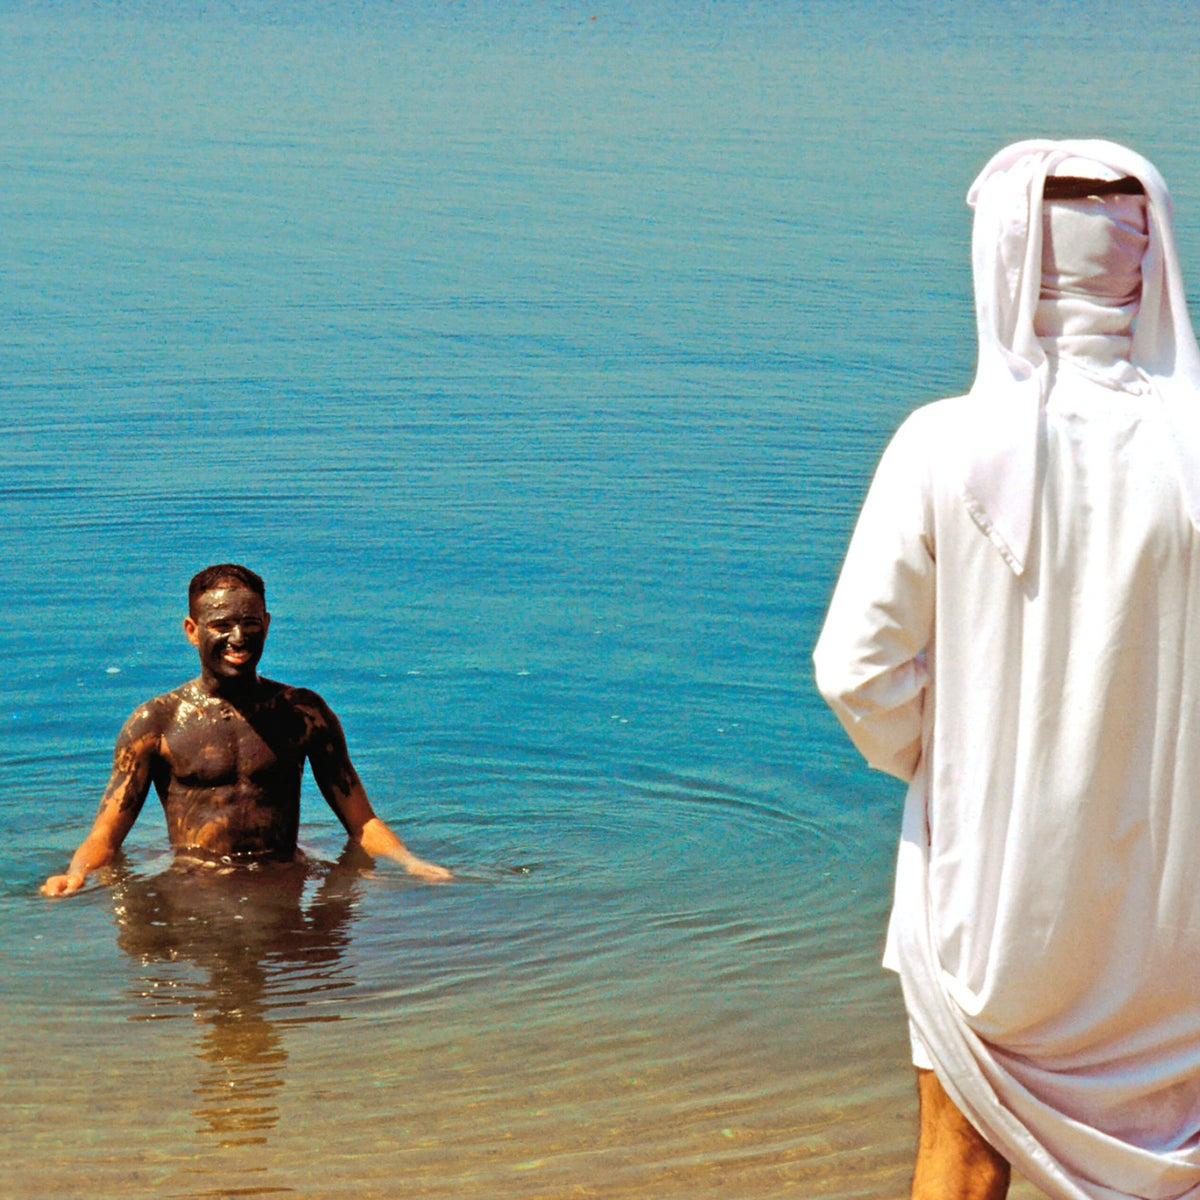 A man bathes in the Dead Sea with mud on him, a local custom.